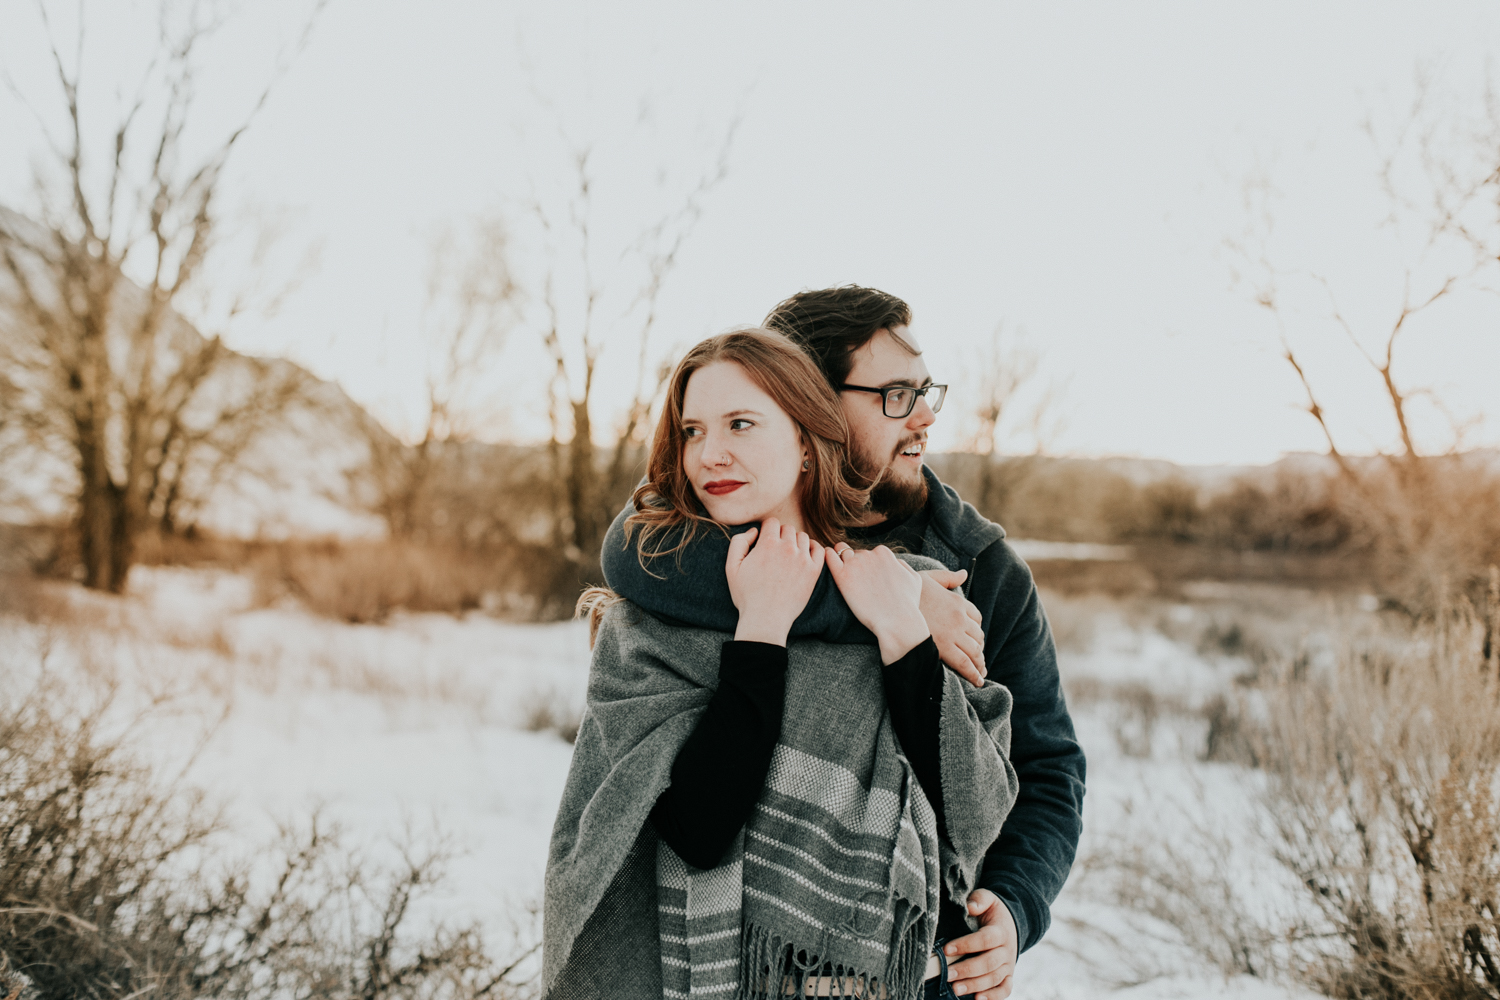 lethbridge-photography-love-and-be-loved-photographer-dan-tynnea-engagement-picture-image-photo-65.jpg